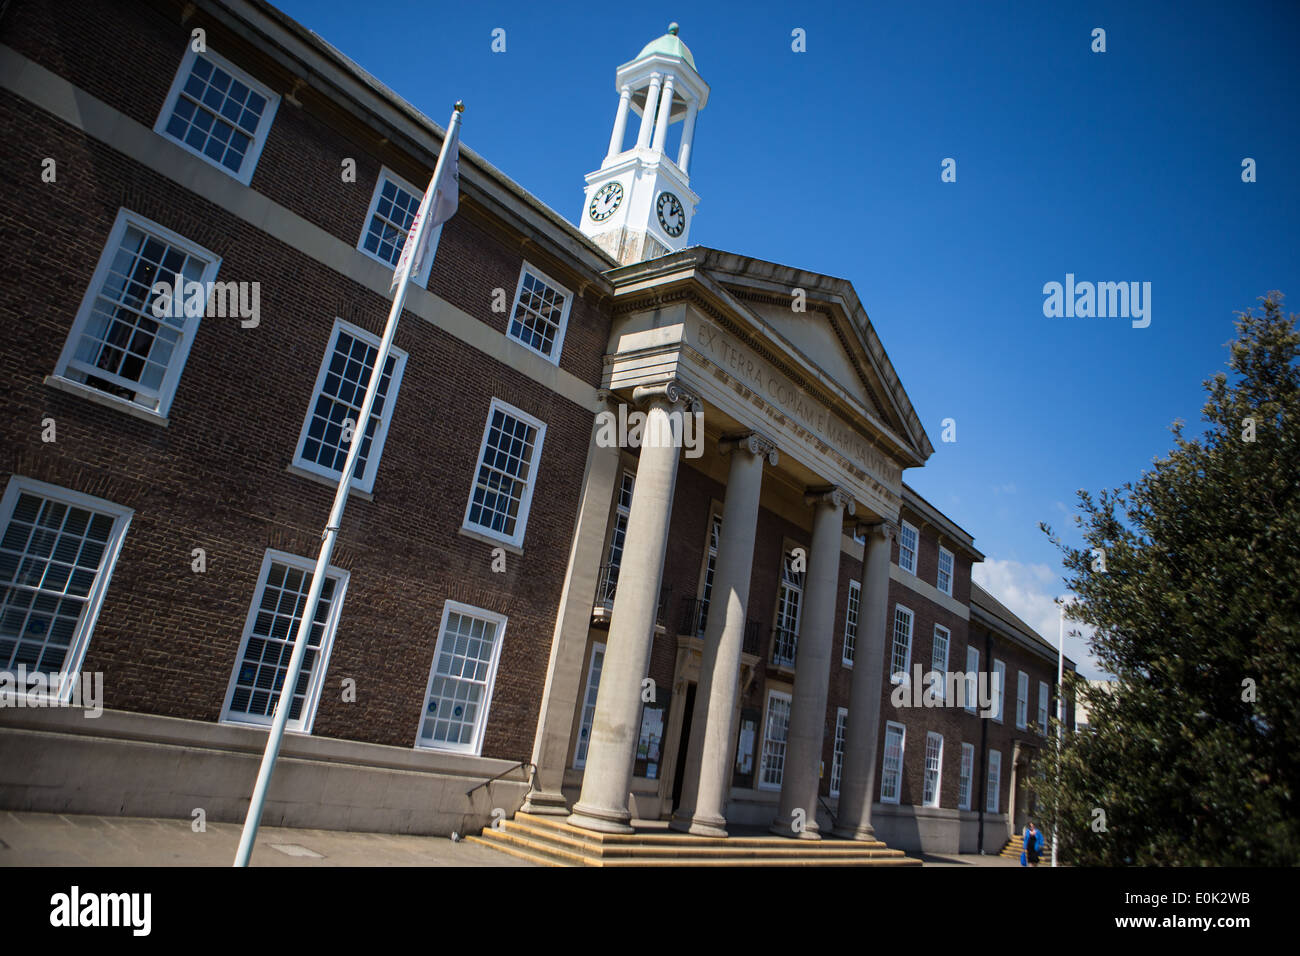 Worthing Town Hall on a sunny day - Stock Image